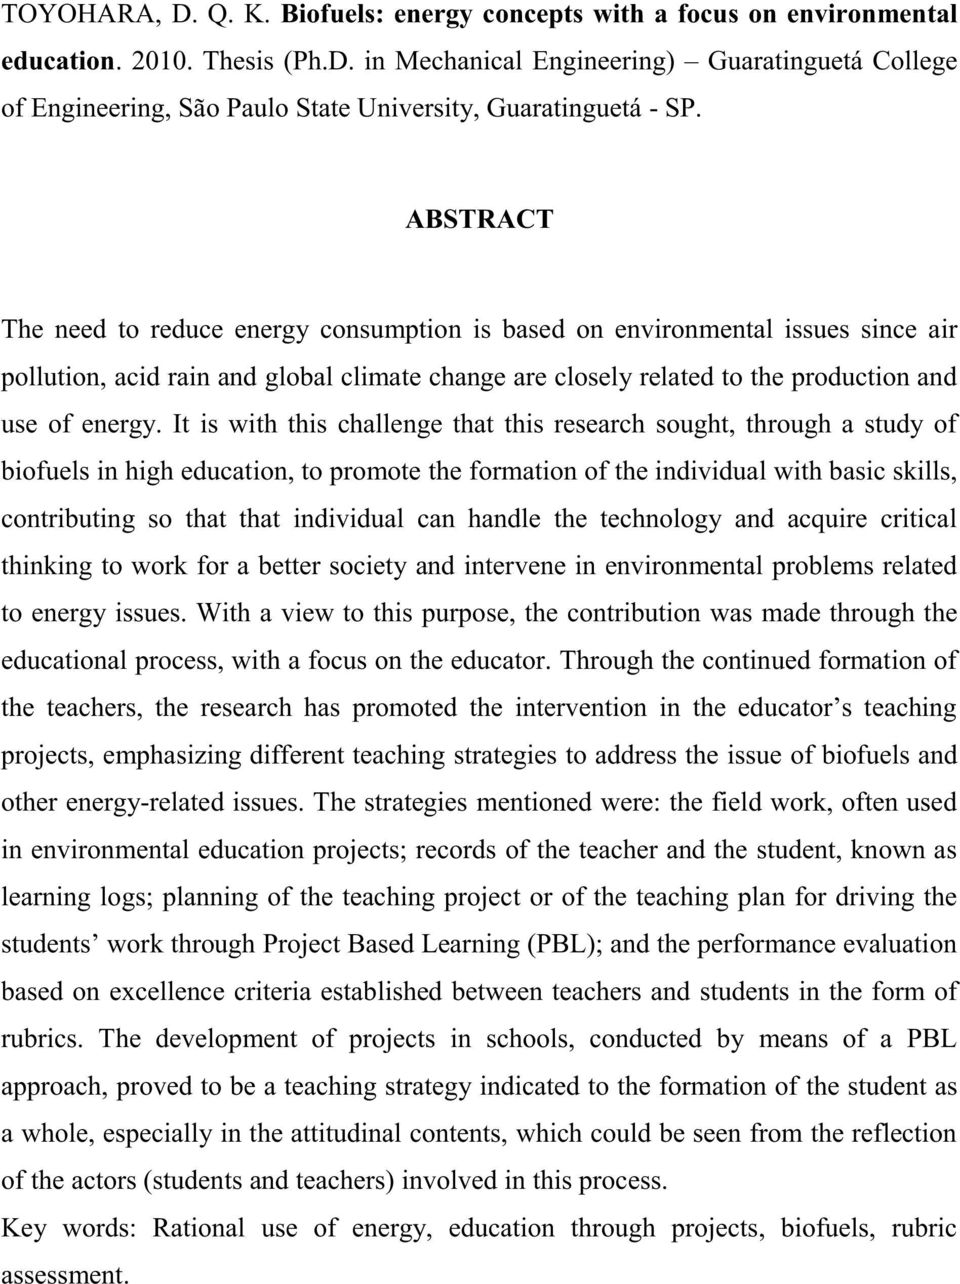 It is with this challenge that this research sought, through a study of biofuels in high education, to promote the formation of the individual with basic skills, contributing so that that individual